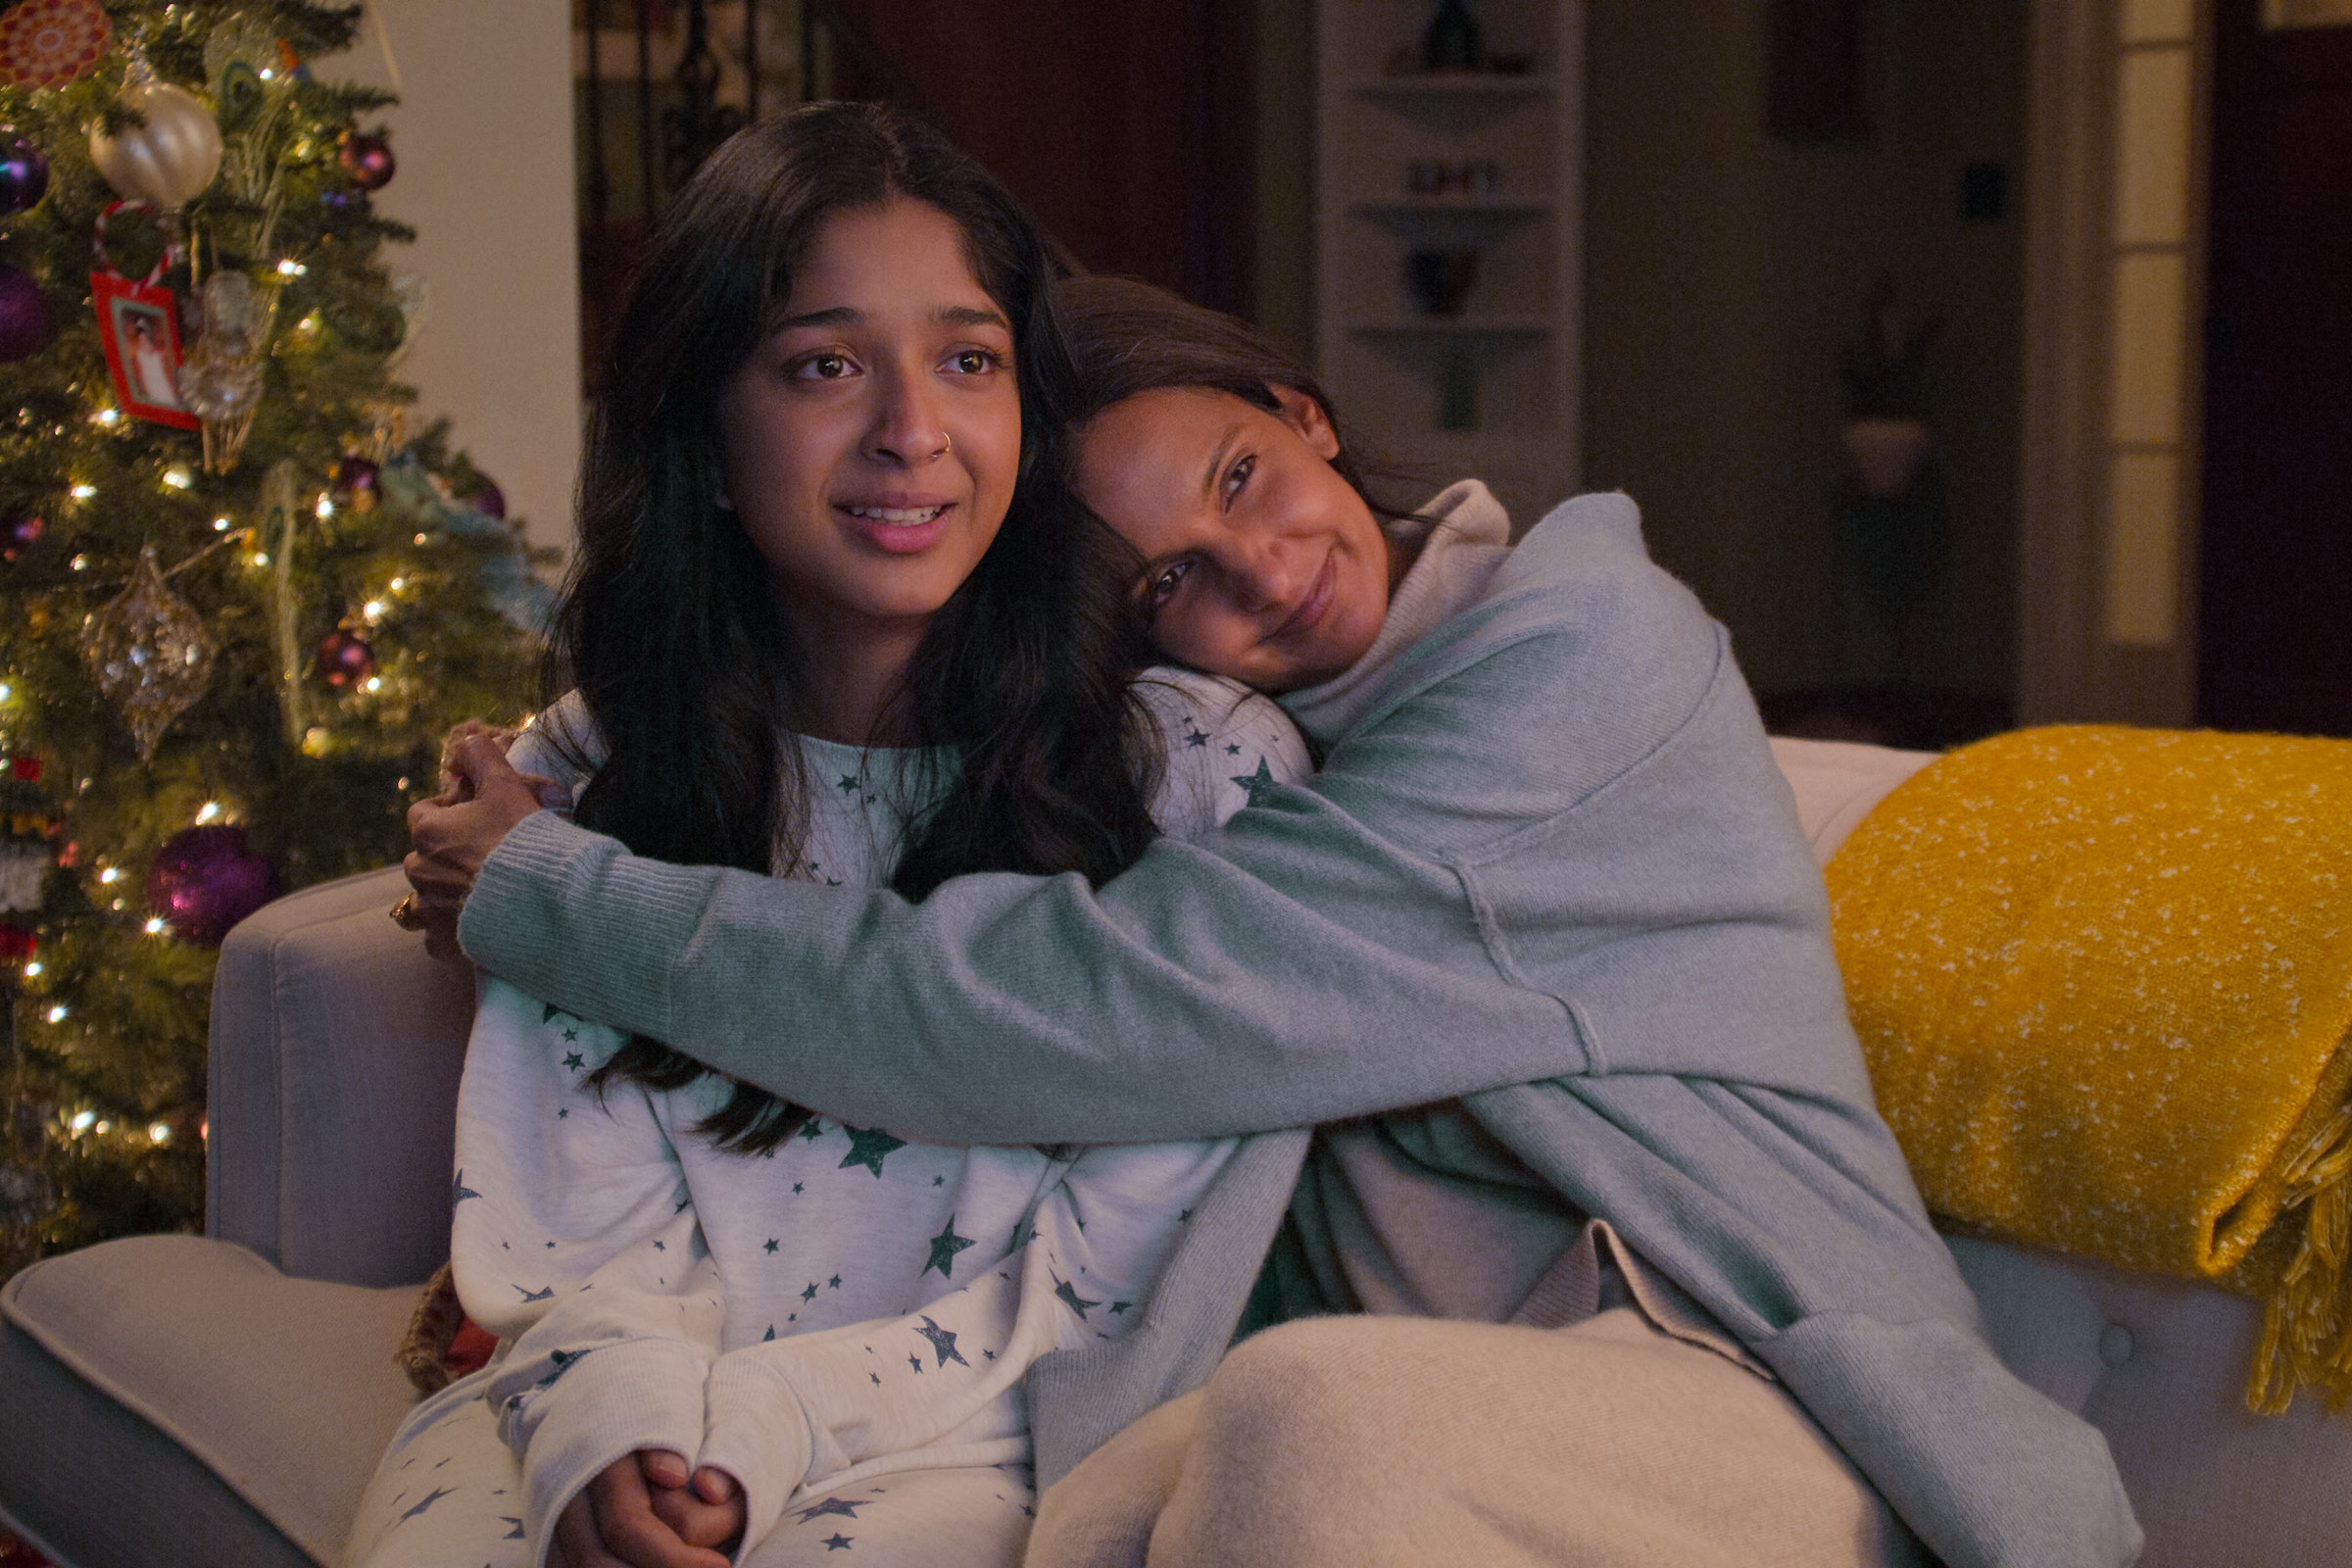 Devi being hugged on the couch with a Christmas tree in the background